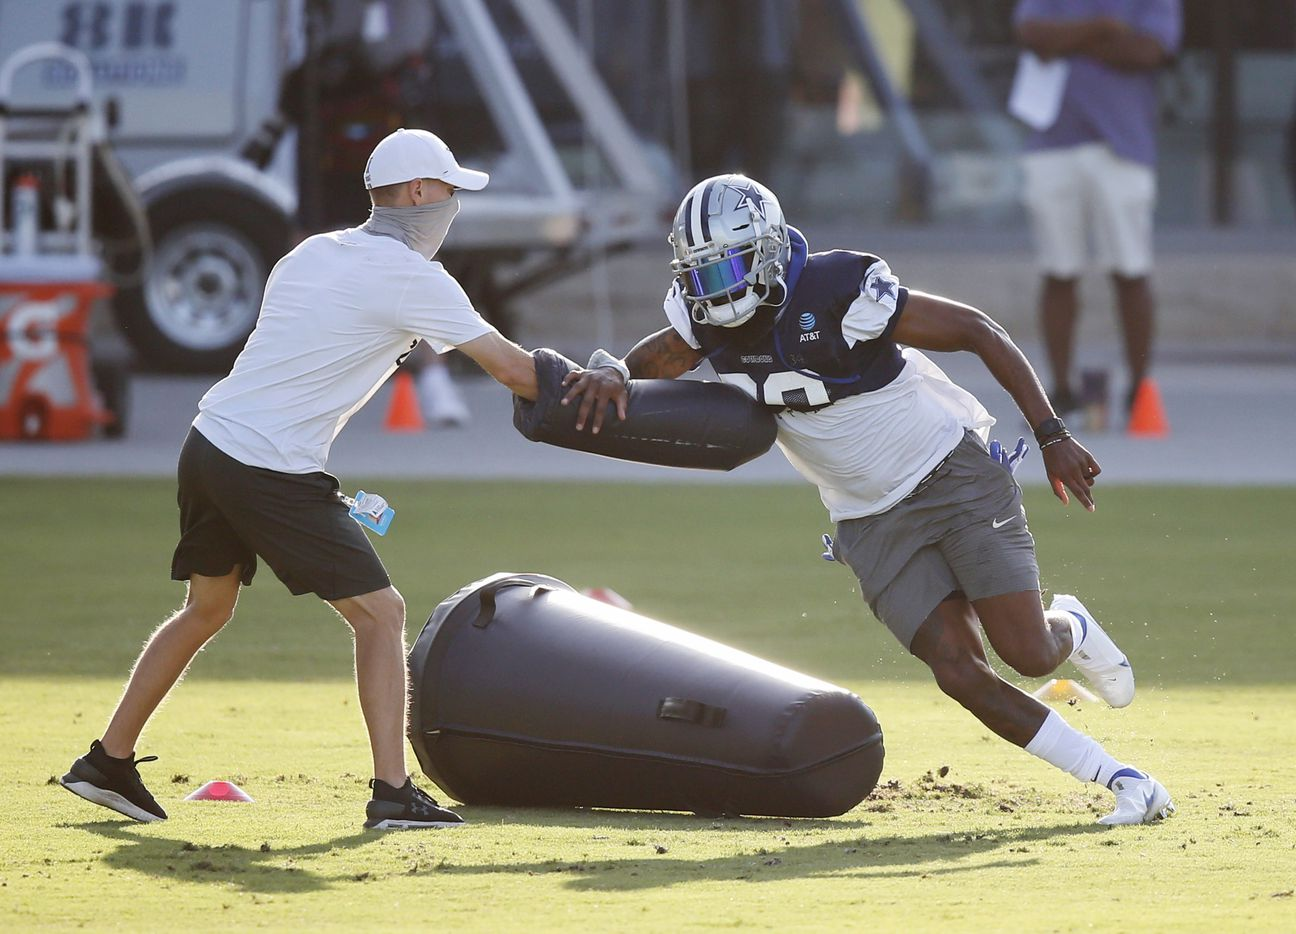 Dallas Cowboys cornerback Daryl Worley (28) runs through a drill during the first day of training camp at Dallas Cowboys headquarters at The Star in Frisco, Texas on Friday, August 14, 2020. (Vernon Bryant/The Dallas Morning News)